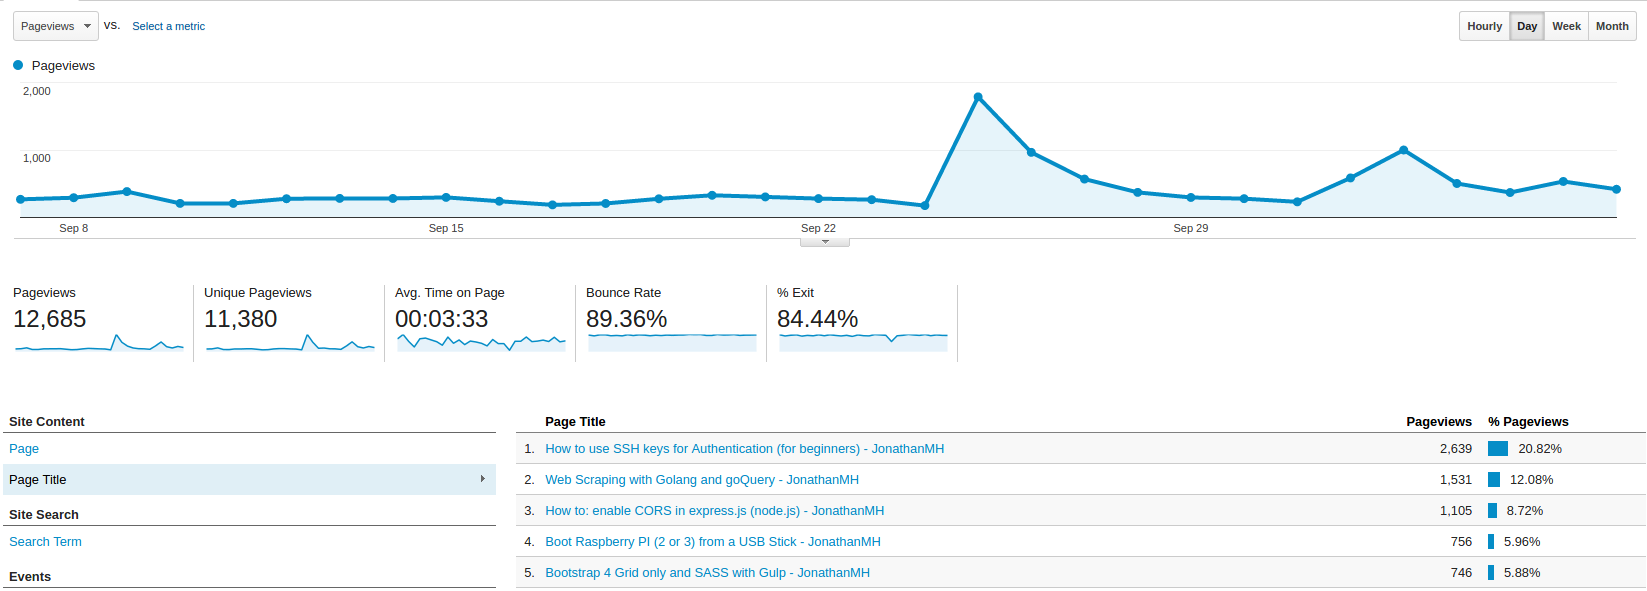 pageviews-by-page-google-analytics